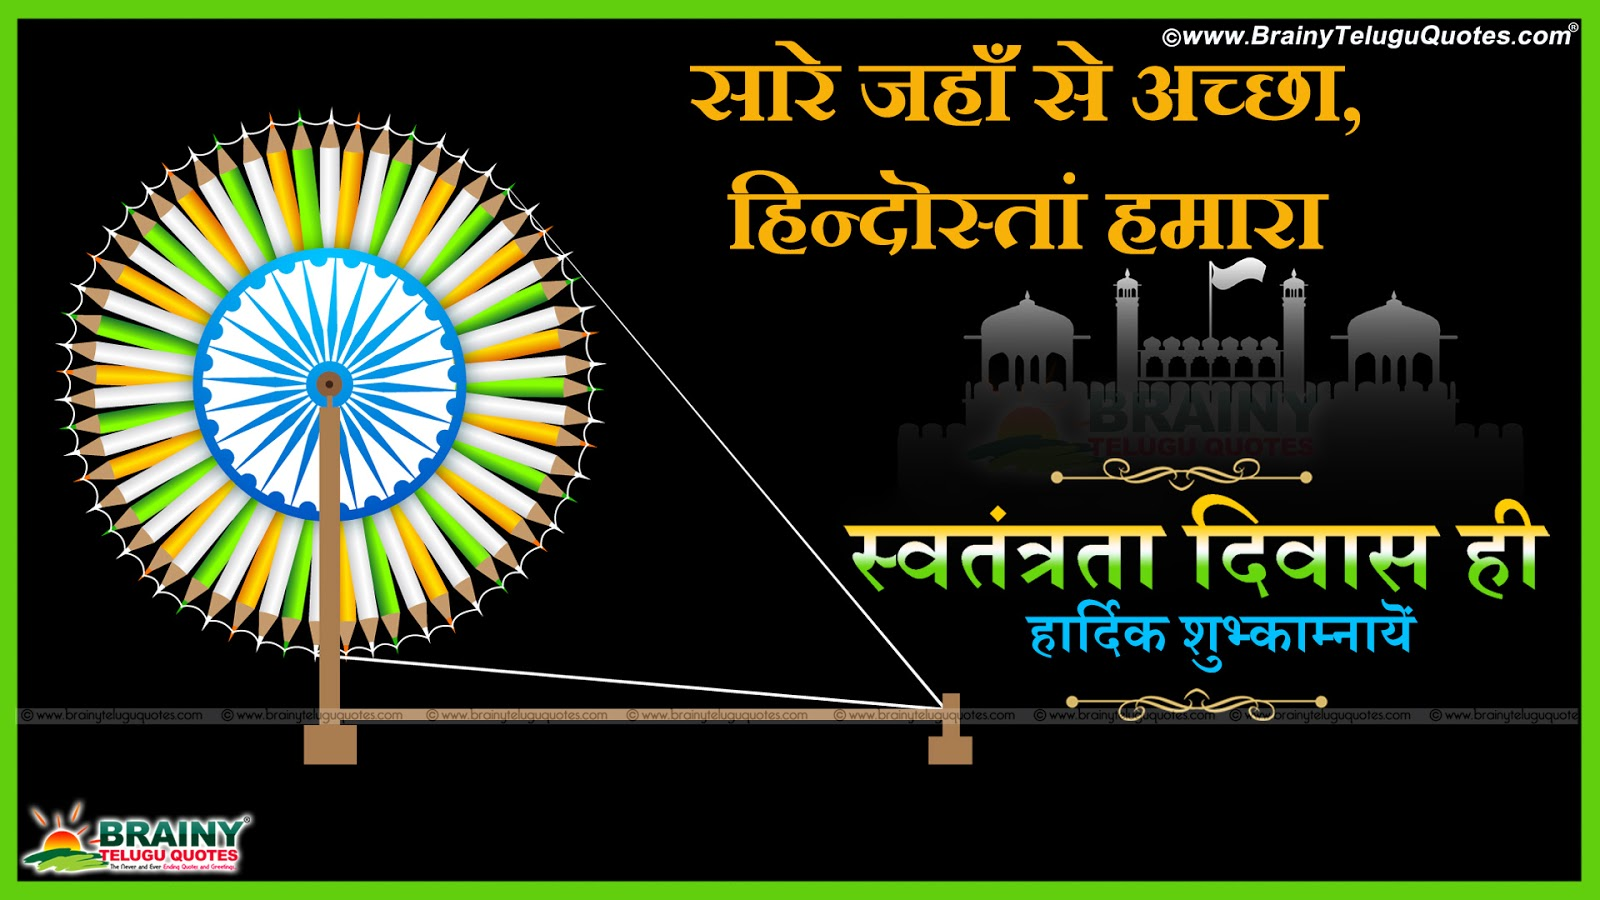 top independence day greetings wishes shayari images in here is top independence day greetings in hindi best independence day wishes in hindi